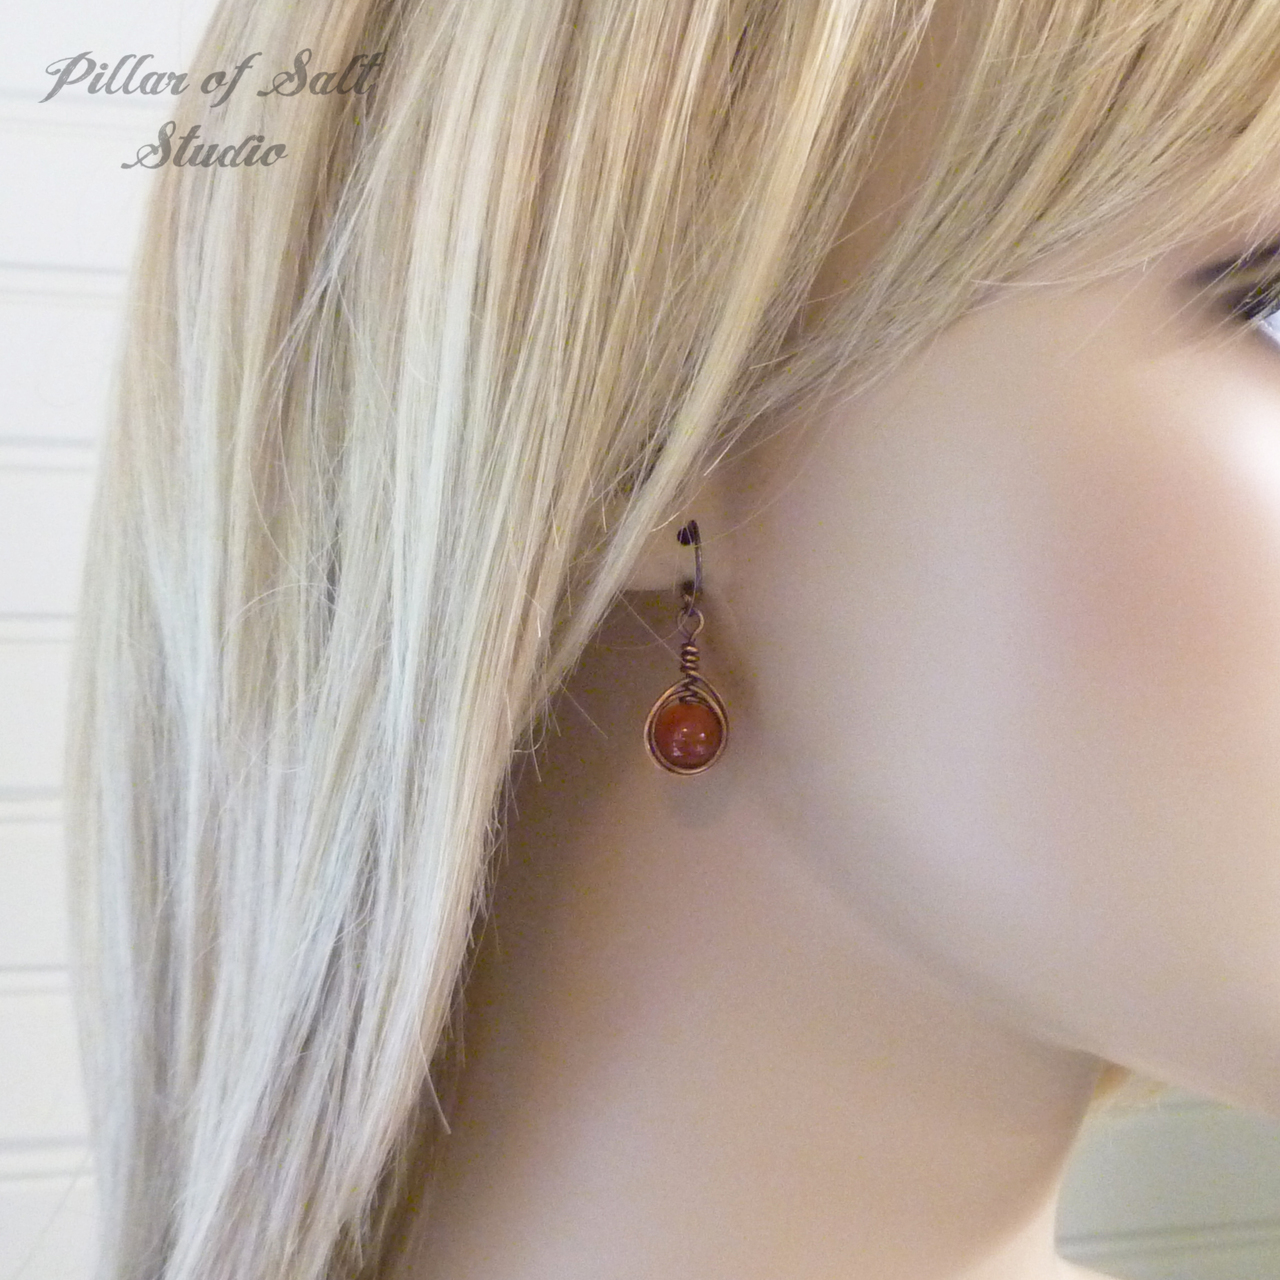 Copper Wire wrapped earrings with Red Carnelian stones